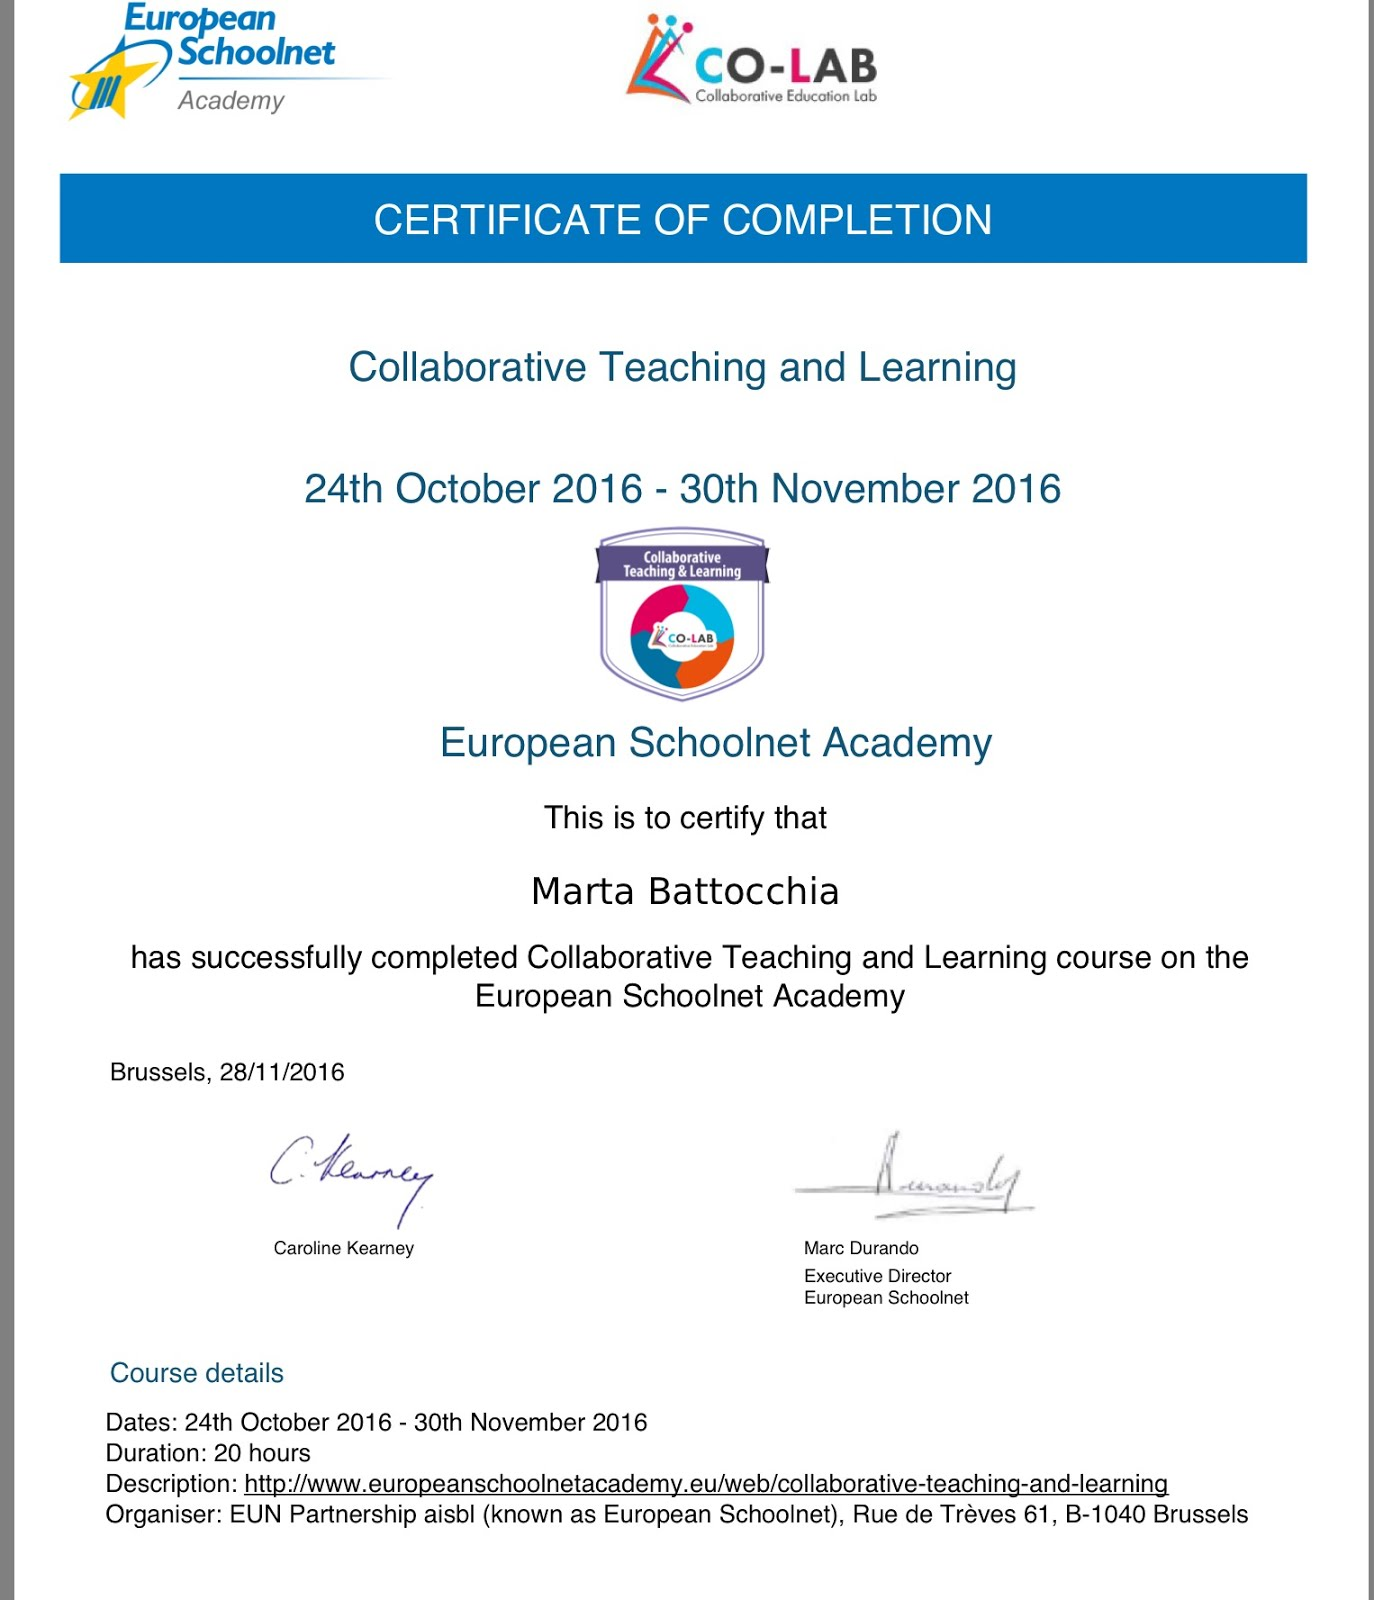 Collaborative teaching and learning course